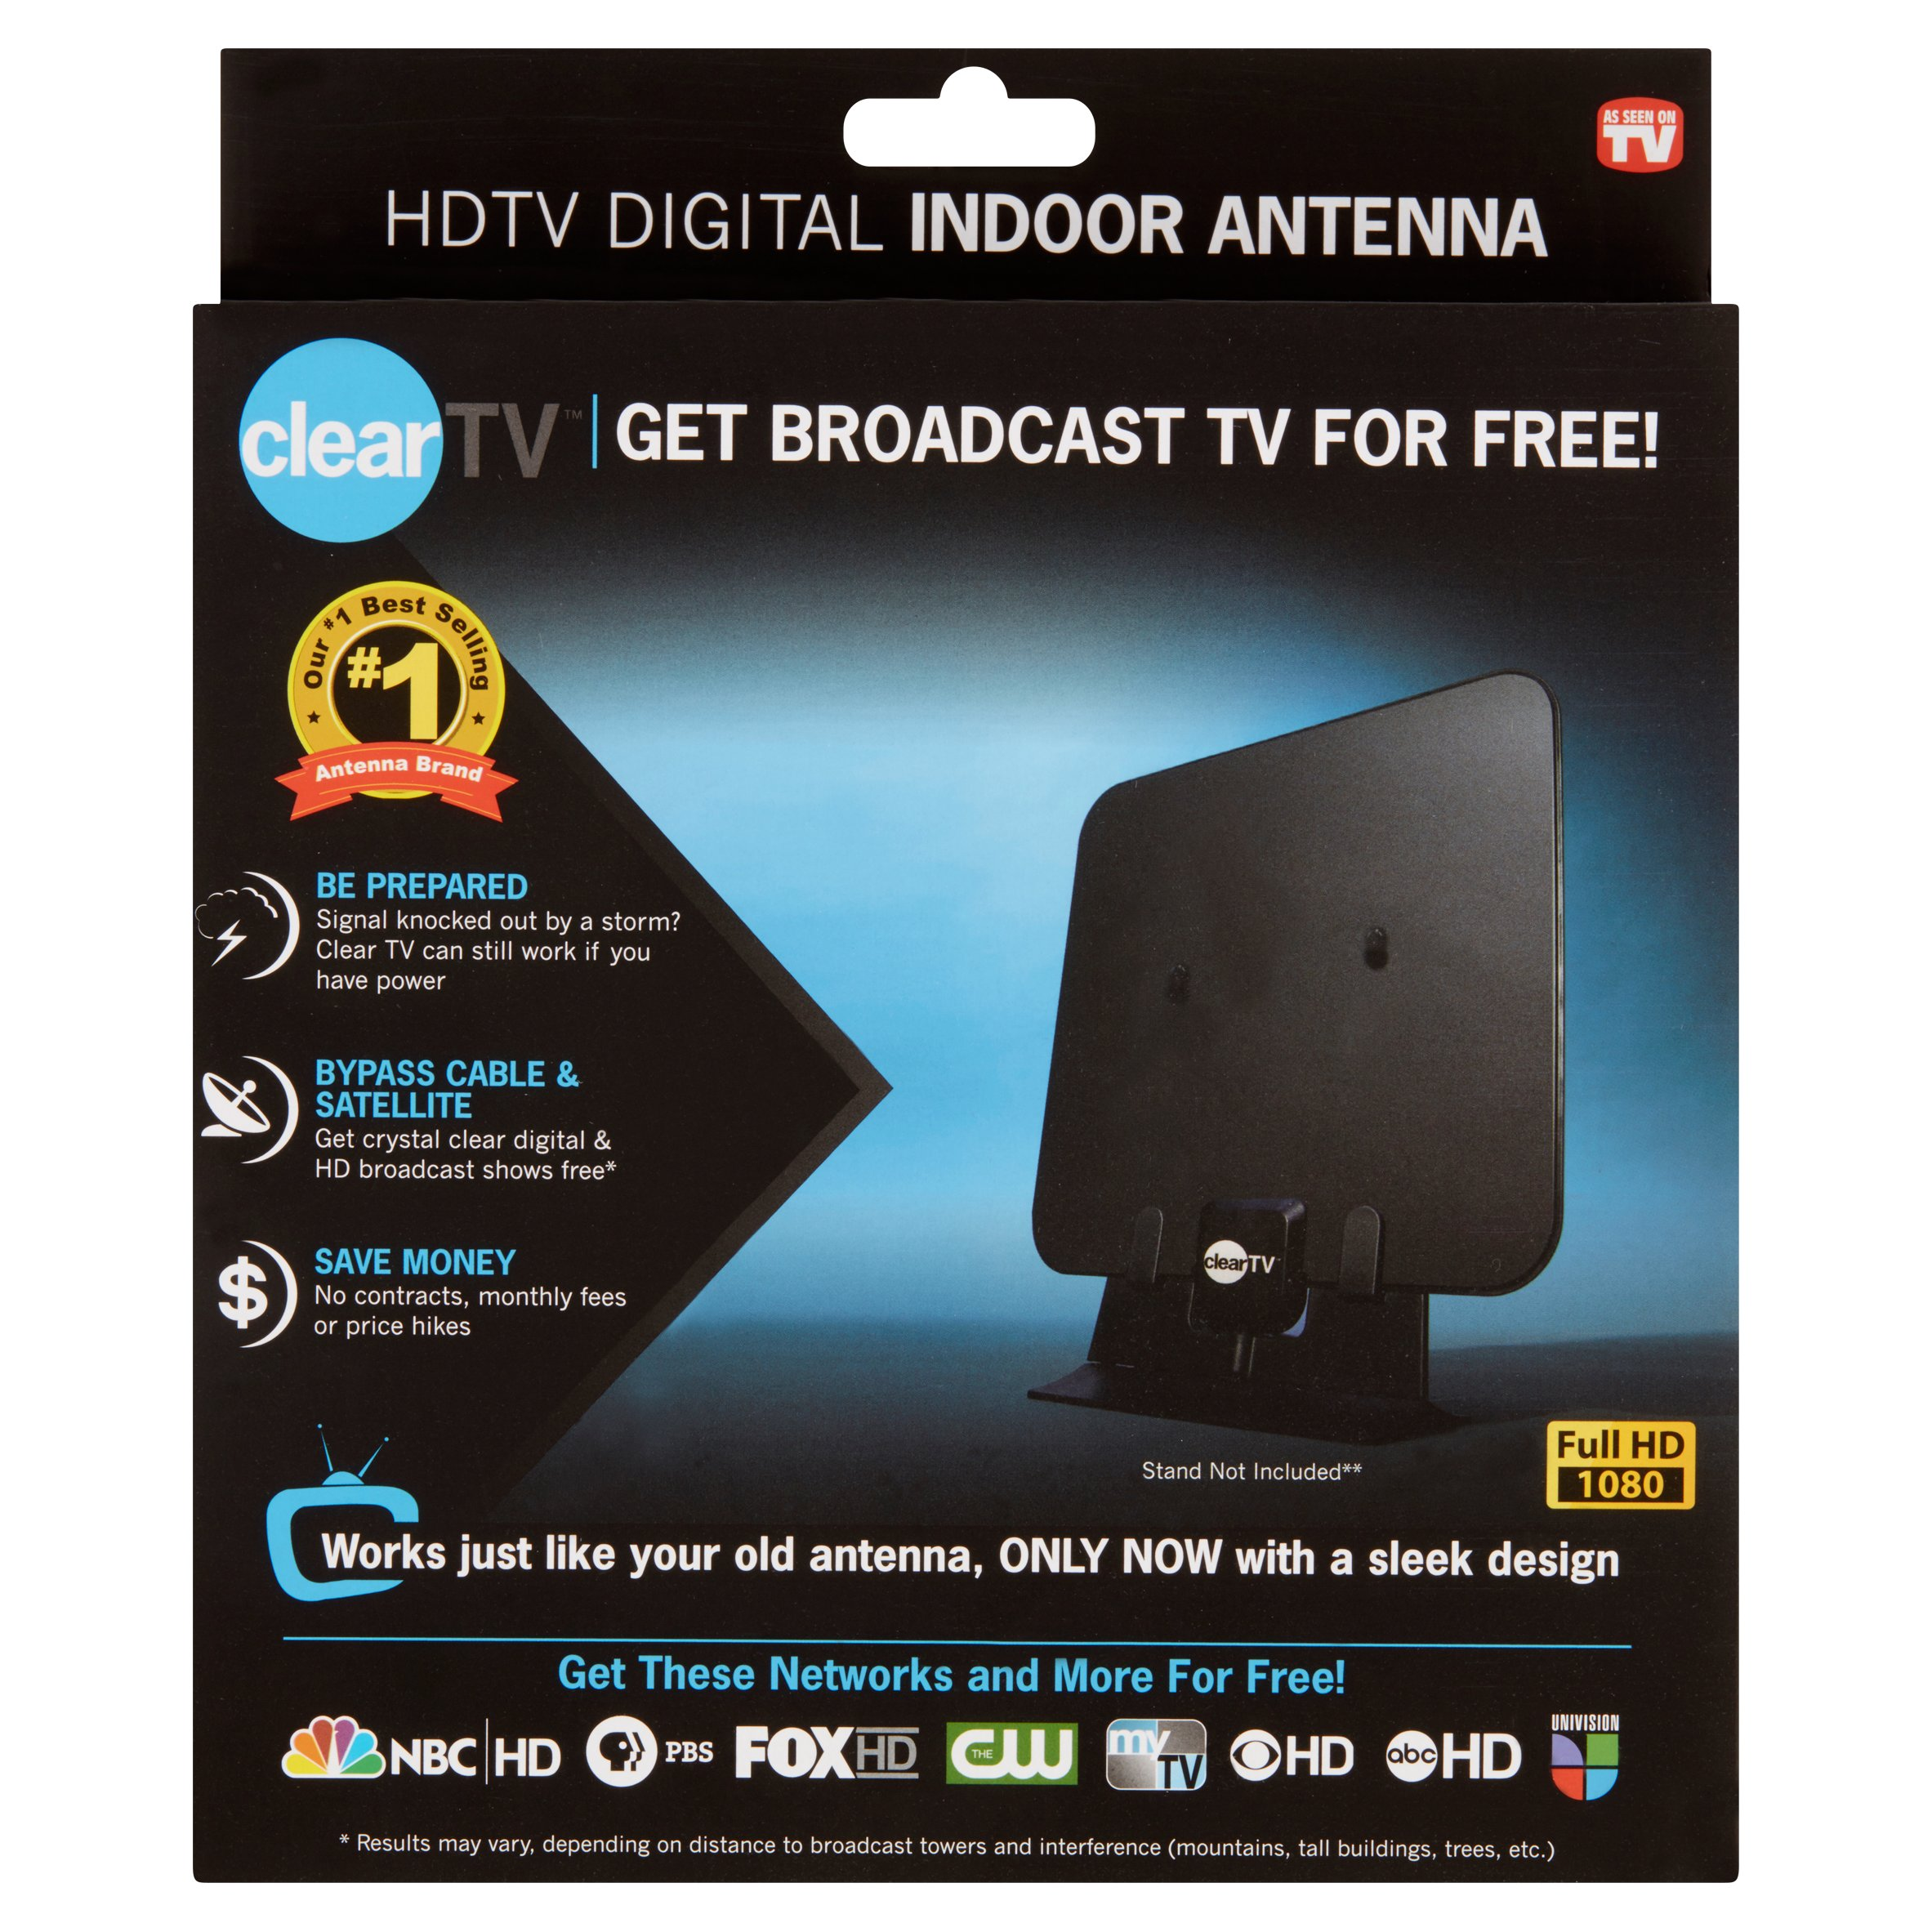 As Seen on TV HDTV Digital Indoor Antenna